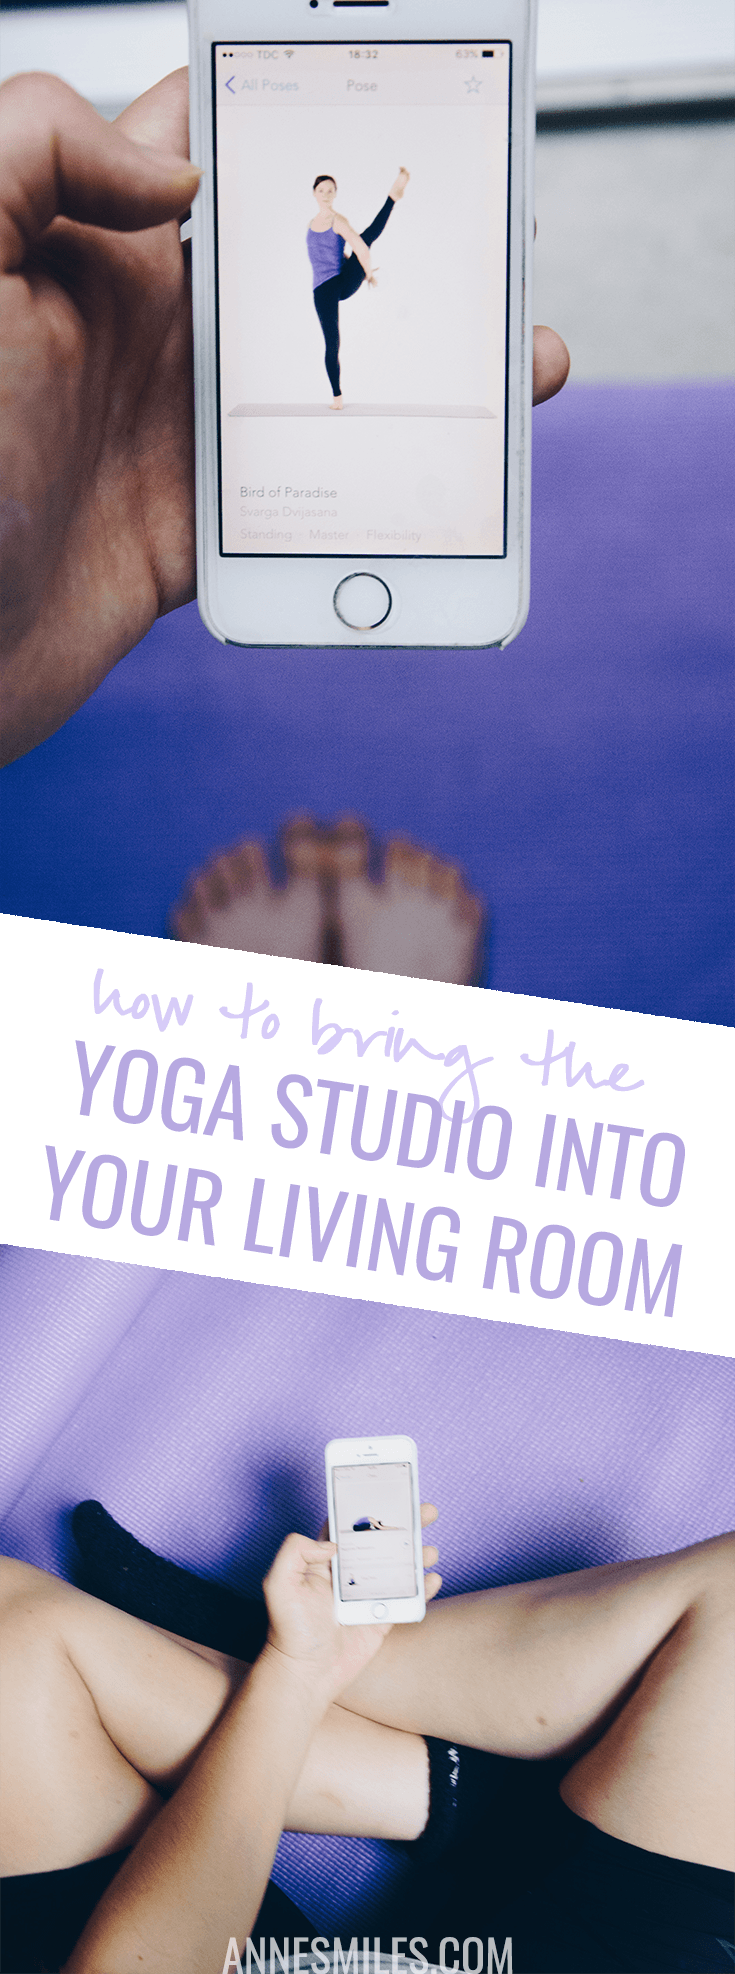 Do you want to practice yoga lead by a talented teacher (or you own classes) right from the comfort of your own home? Here's a review of my favorite yoga app #yoga